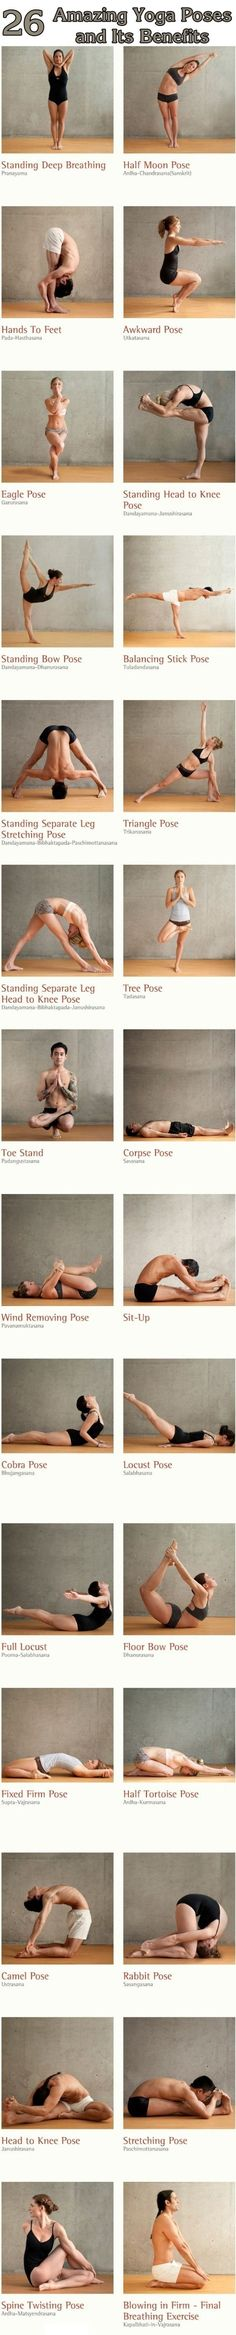 Amazing yoga poses and its benefits